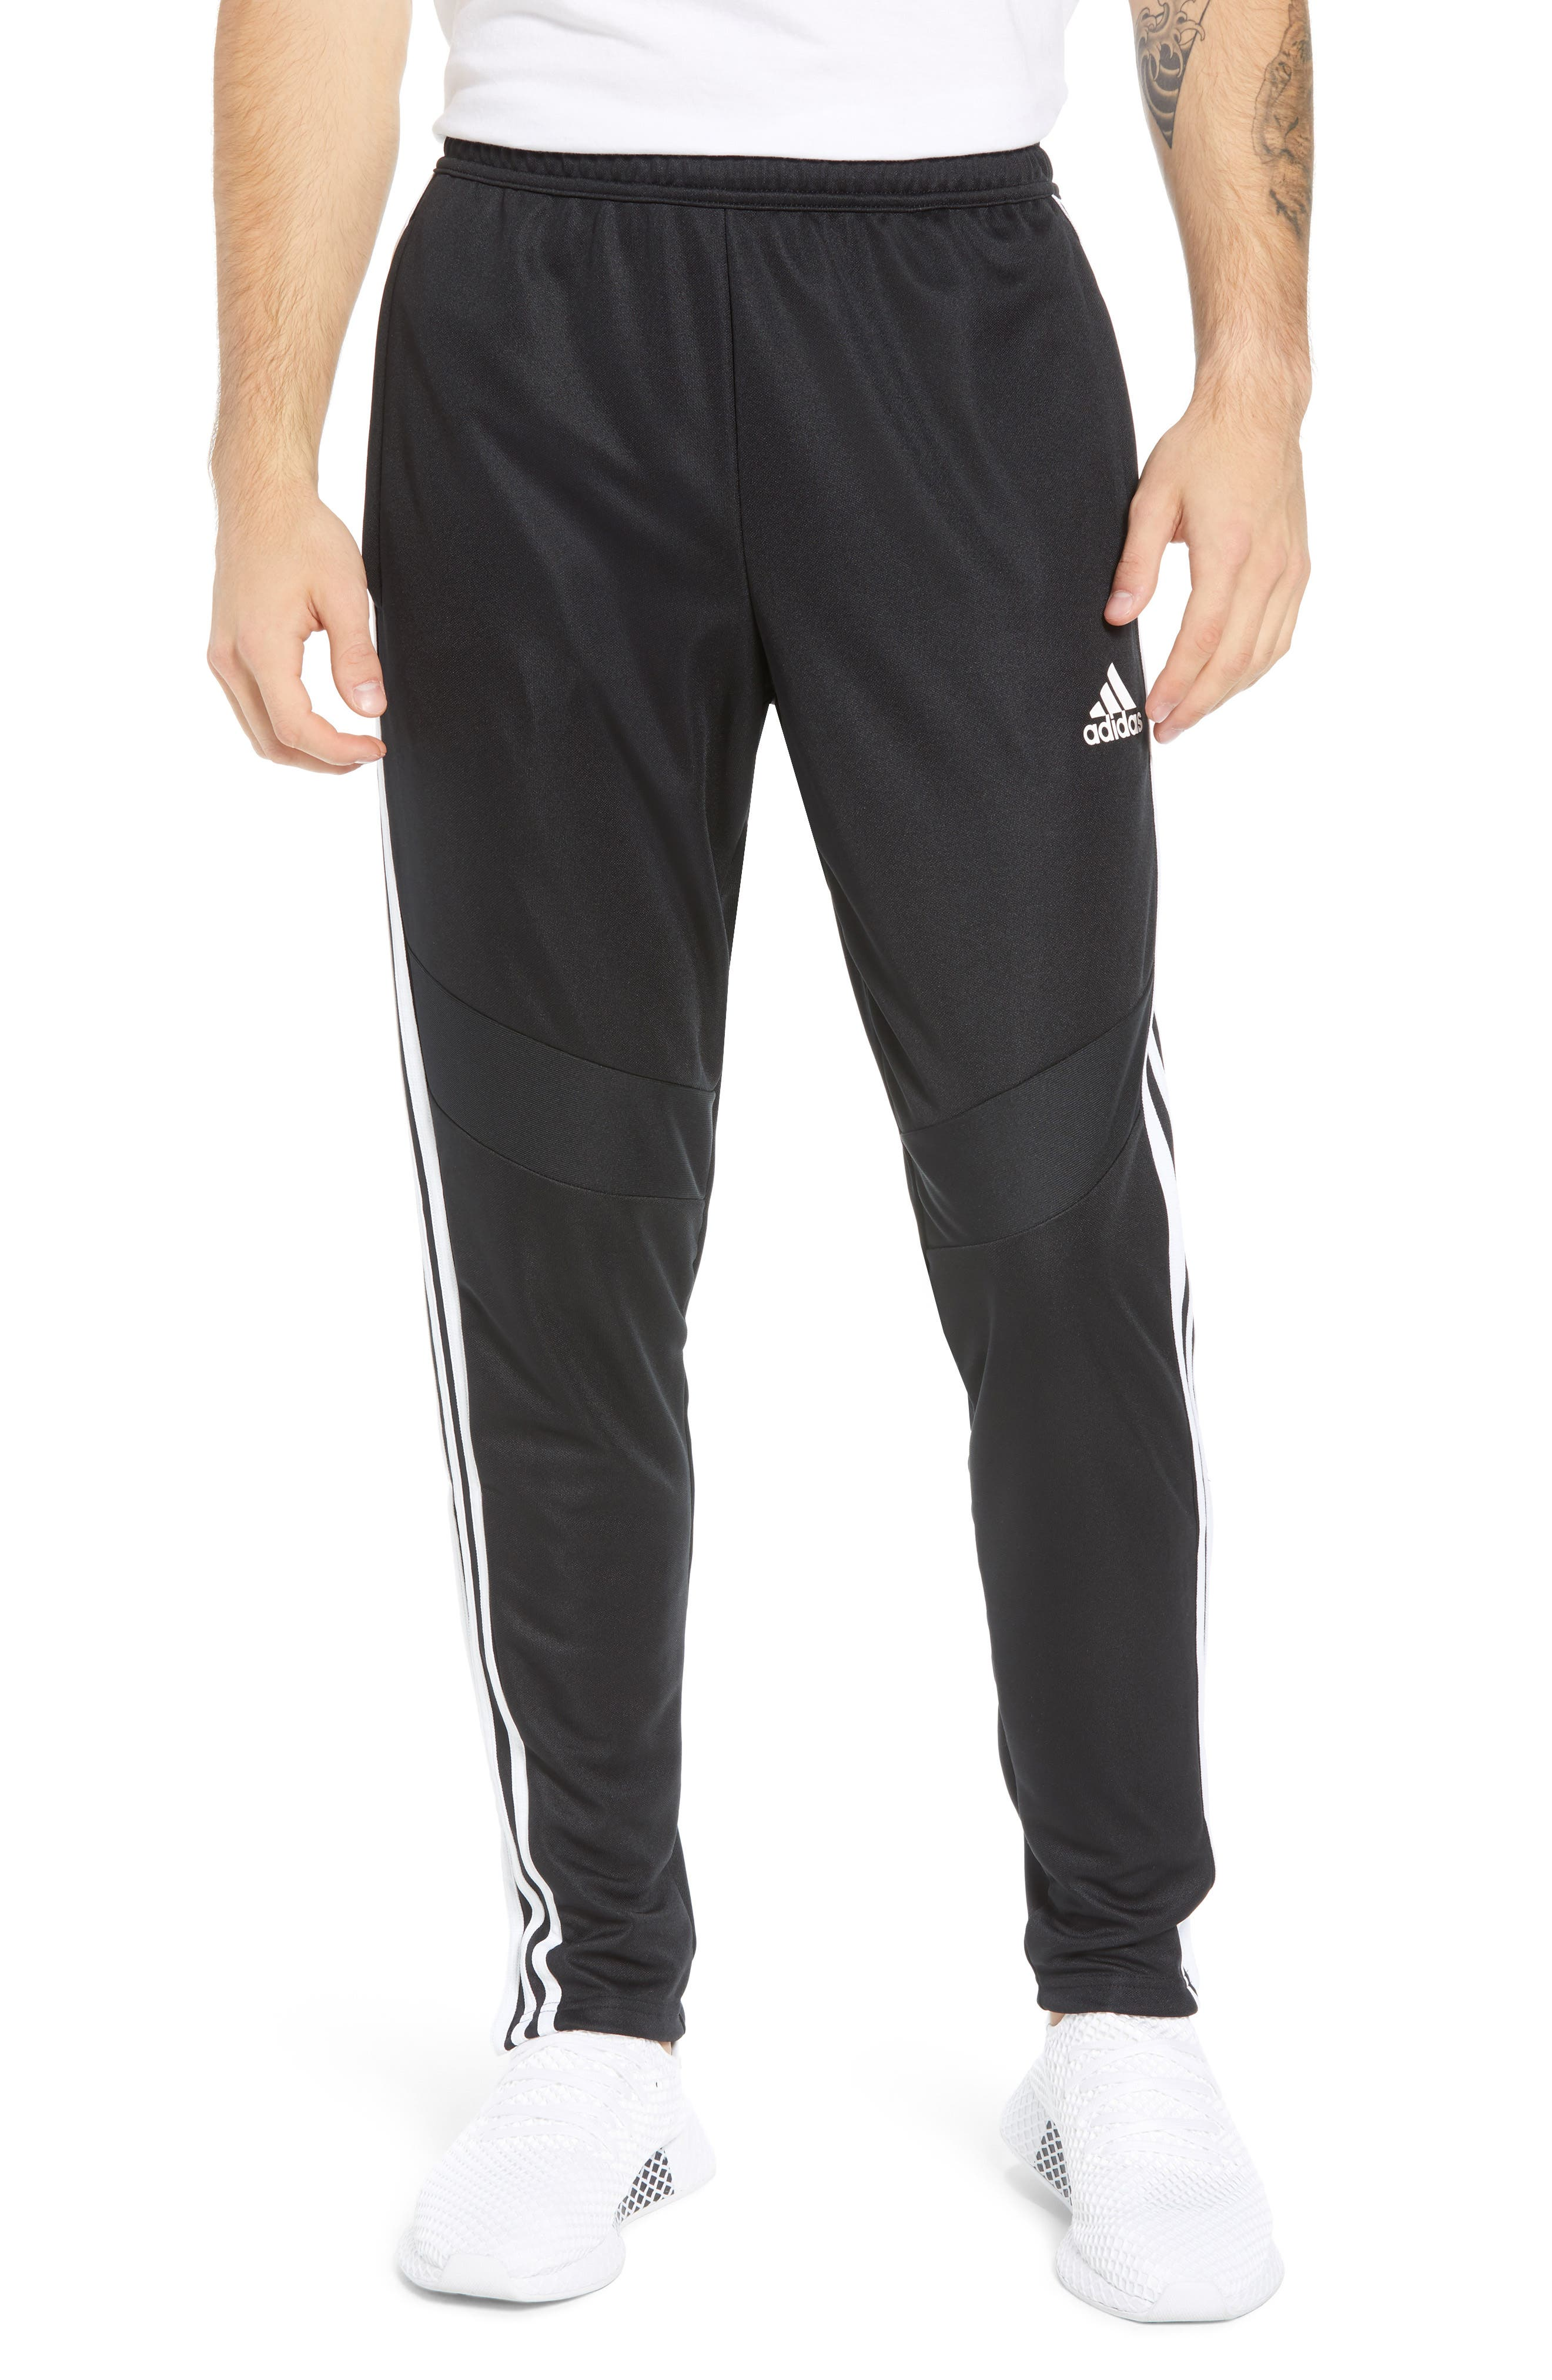 ADIDAS Tiro Soccer Training Pants, Main, color, BLACK/ WHITE